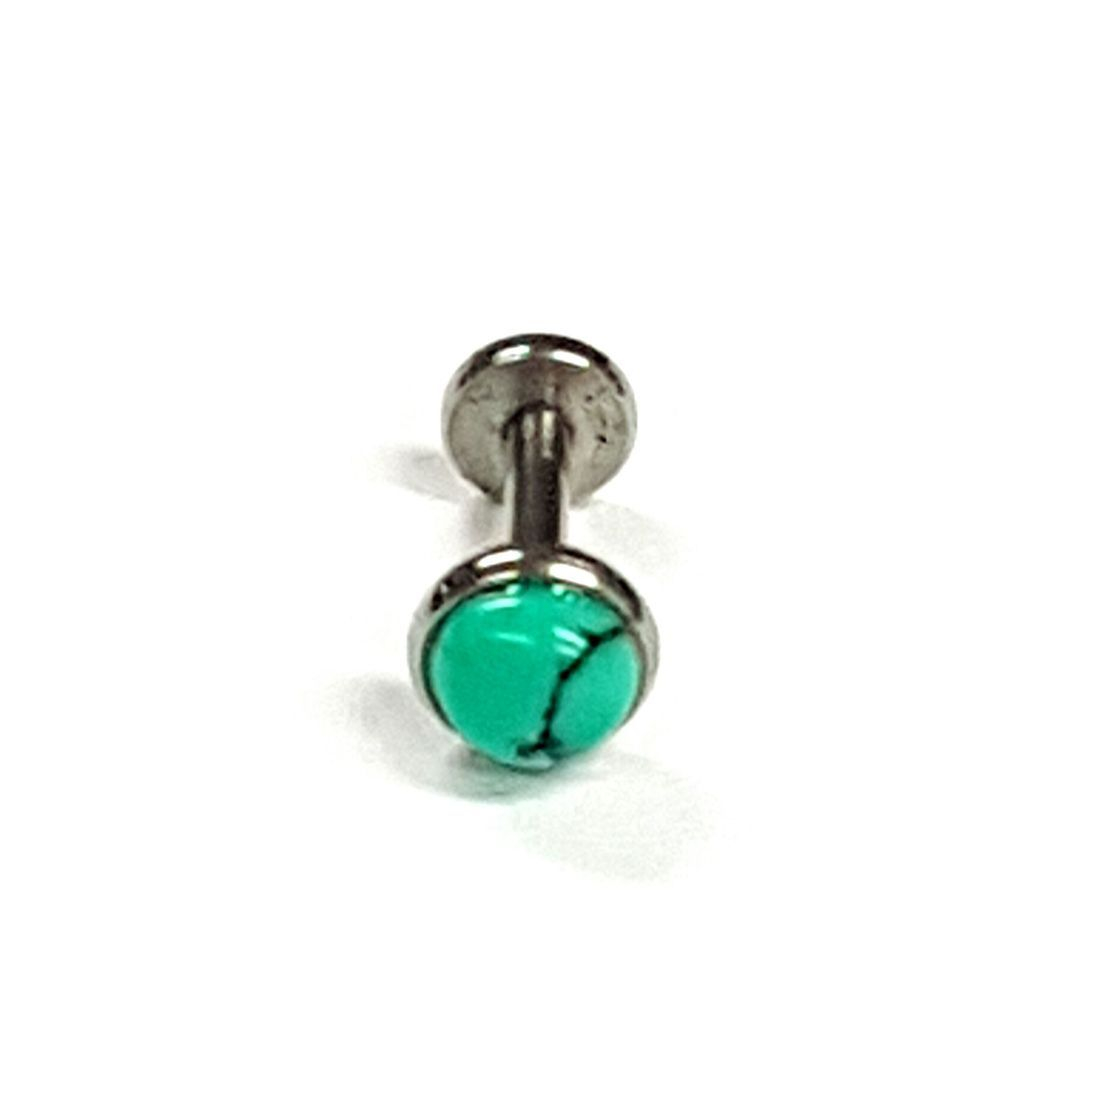 1.2mm x 6mm Turquoise Flat Back Bar 5mm Ball    available at Kazbah online and our Leicester City Centre Shop